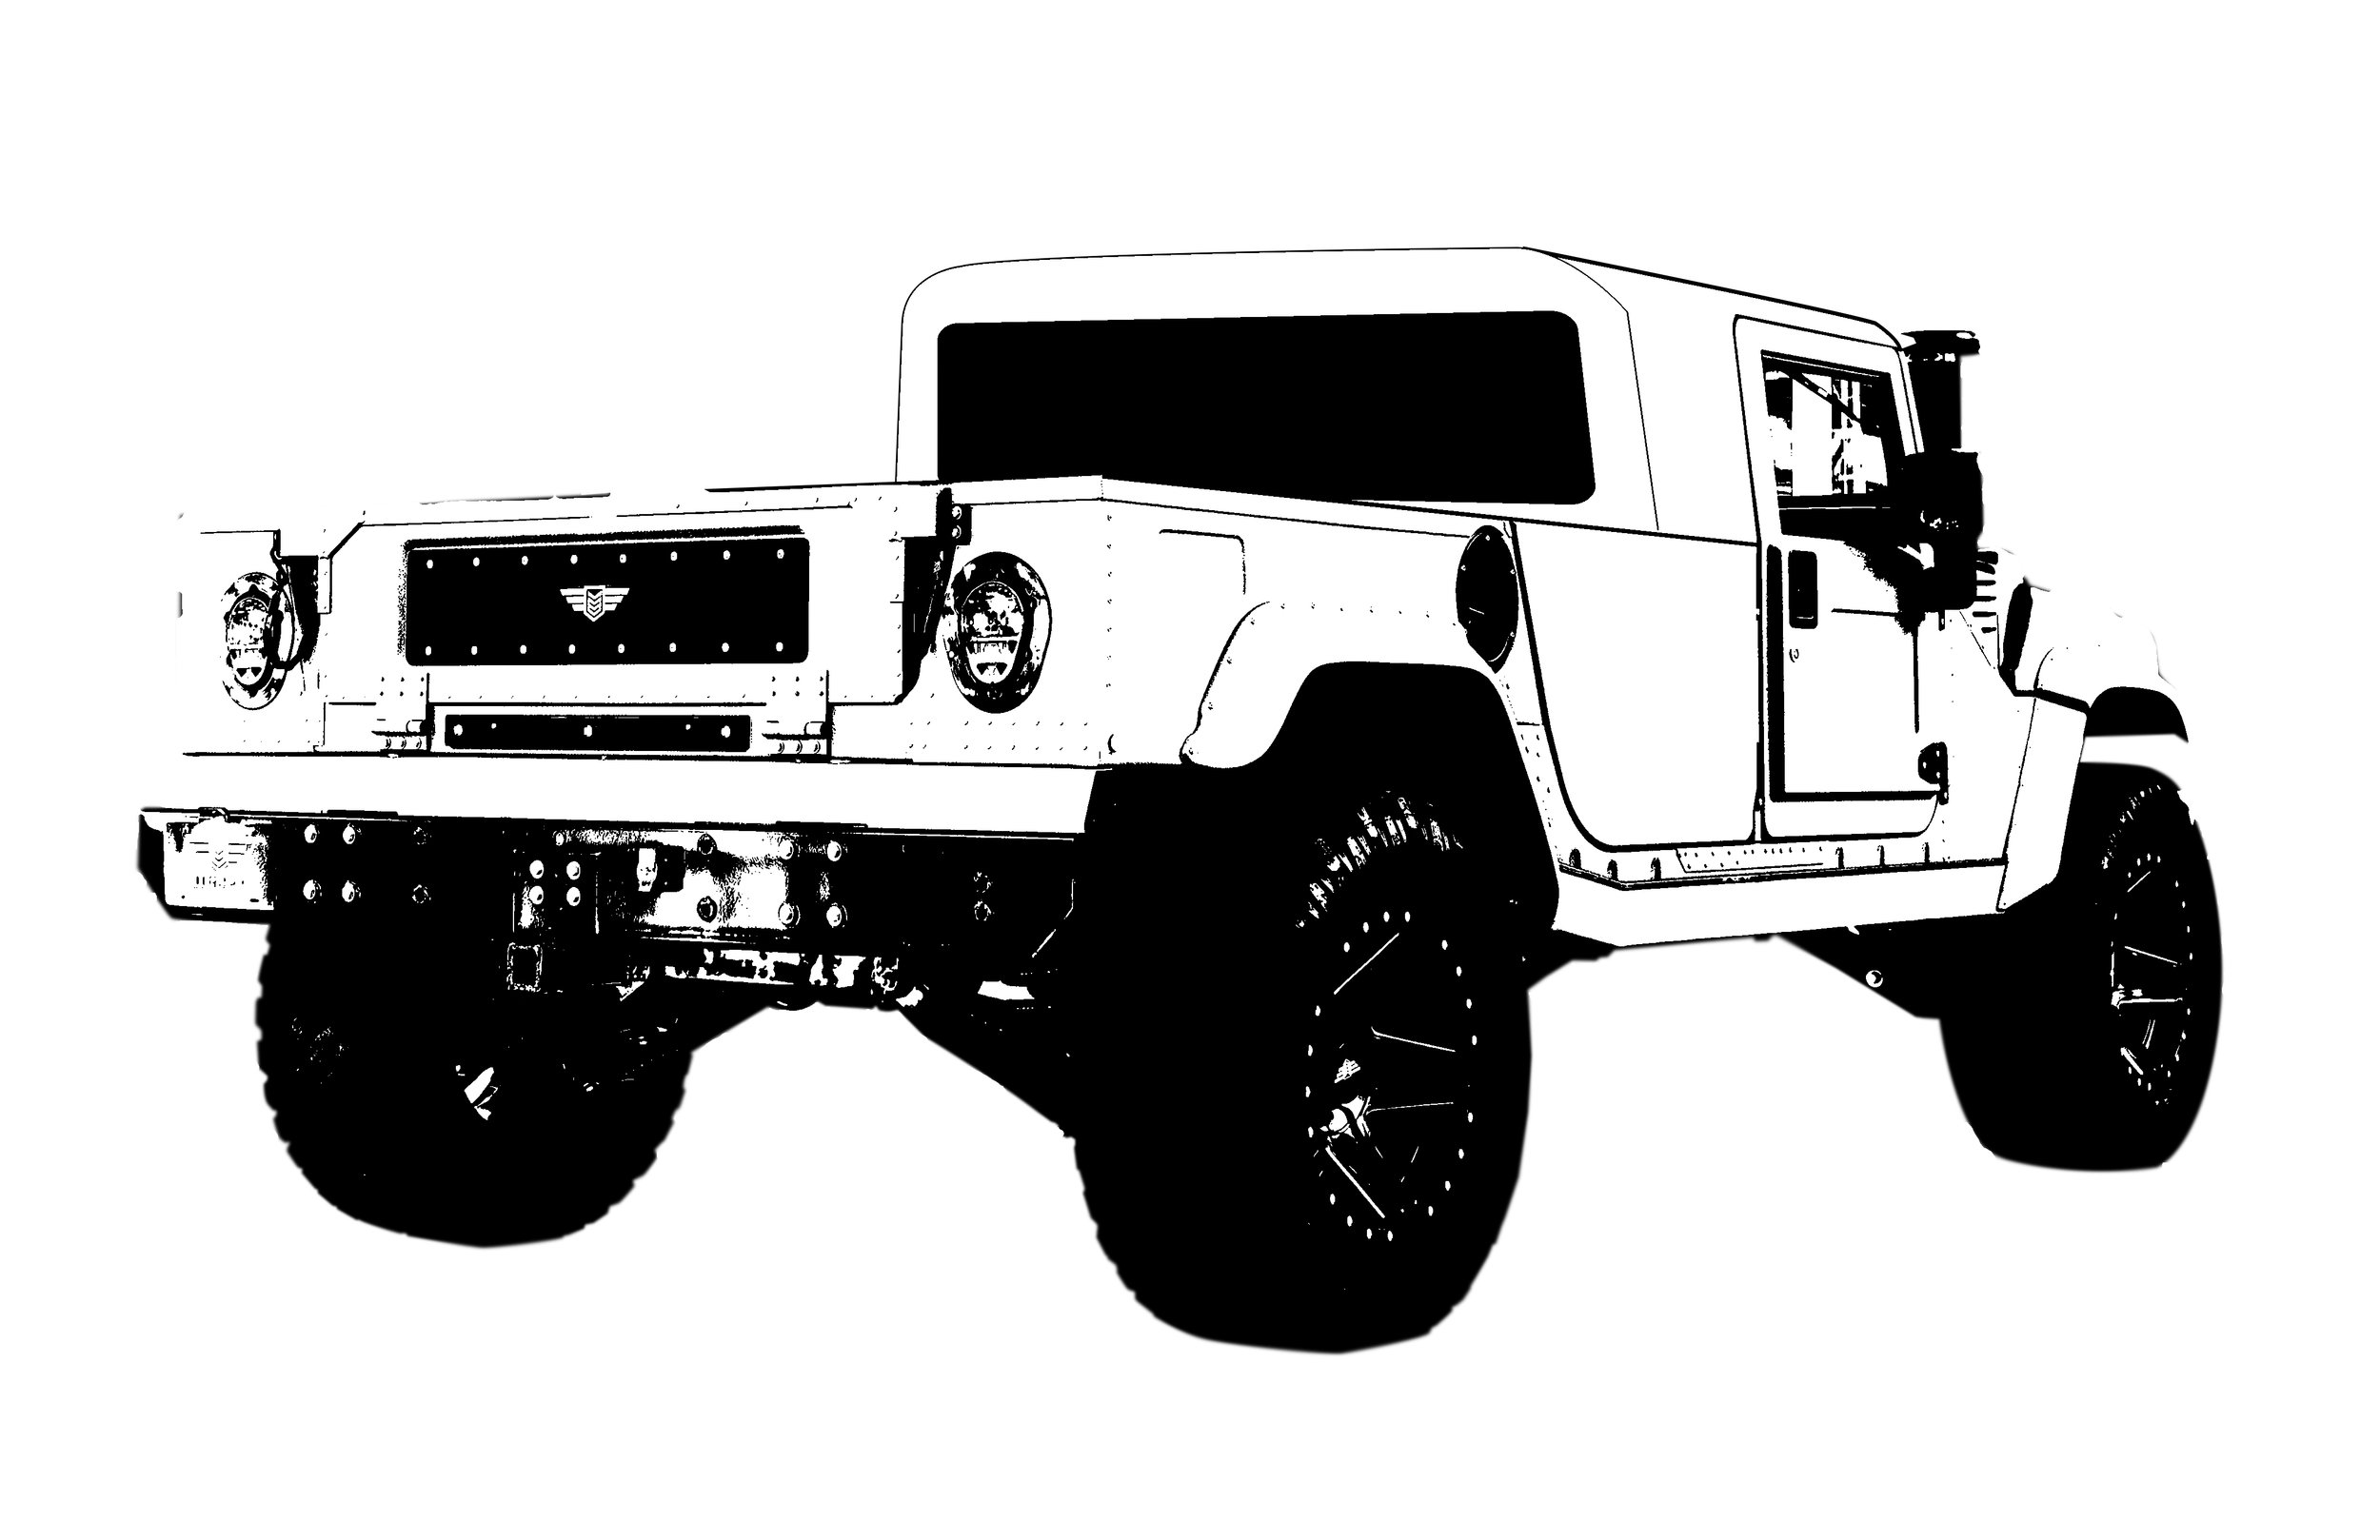 2 Door Hard-Top Pickup - Extended pickup bed (LxWxH 76 in x 51.5 in x 13.5in) with non-removeable, steel hardtop, oversized(opening) rear window, single row seating configuration with low profile bulkhead (subwoofer, amplifier, and locking storage box) configuration, singlecab center console design (not equipped with rearHVAC unit), single cab overhead console design,body color texture coating, acoustic deadening cabtreatment coating, and sound deadened aircraftgrade aluminum headliner panels wrapped withheadliner padding